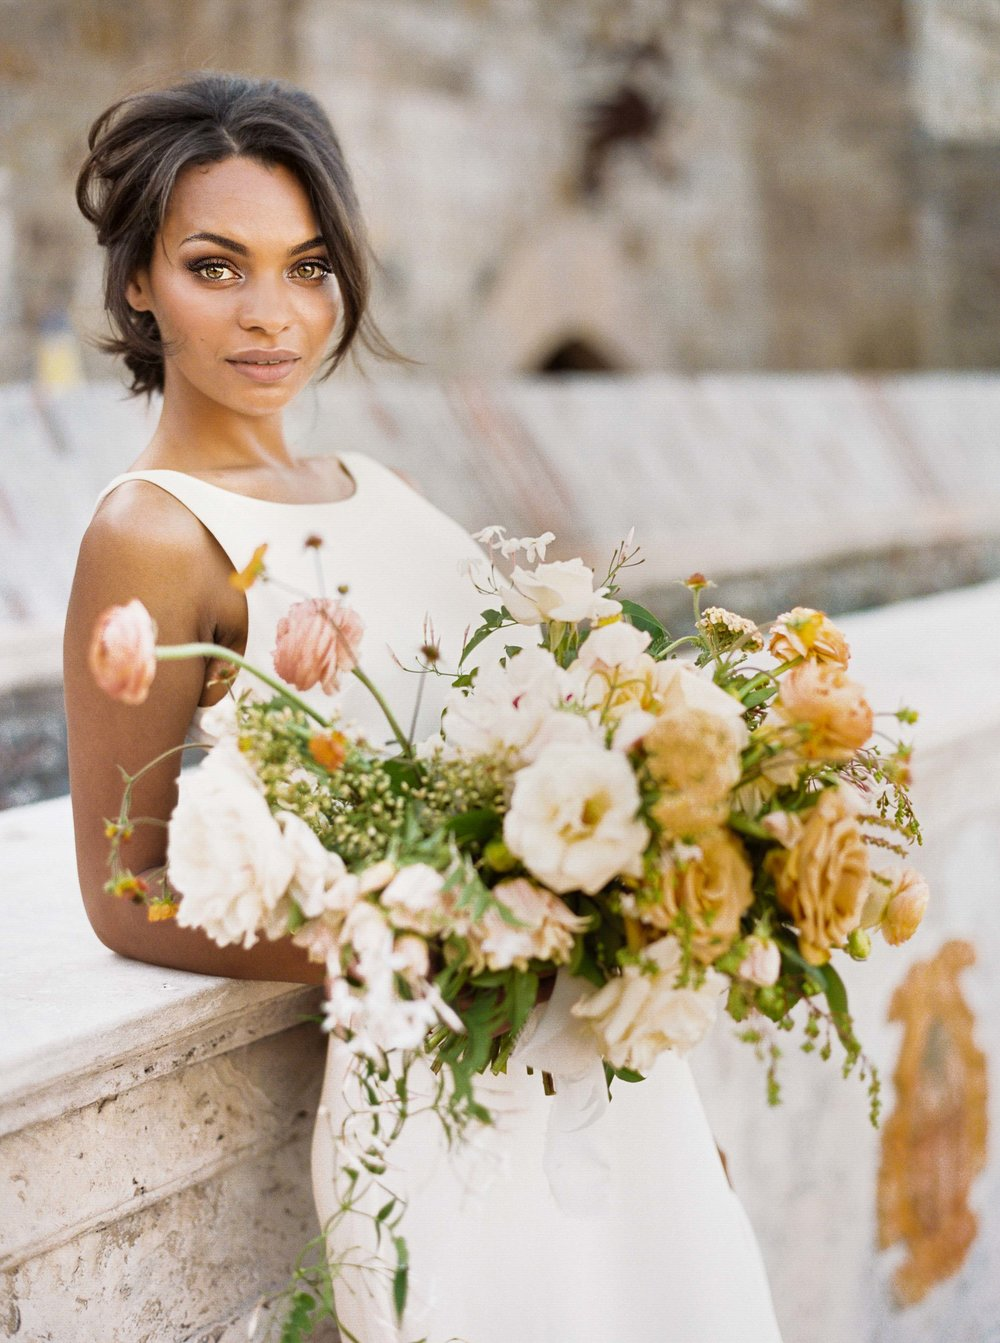 028napa_wedding_photographer_and_videographer_destination_and_elopement_photography.jpg